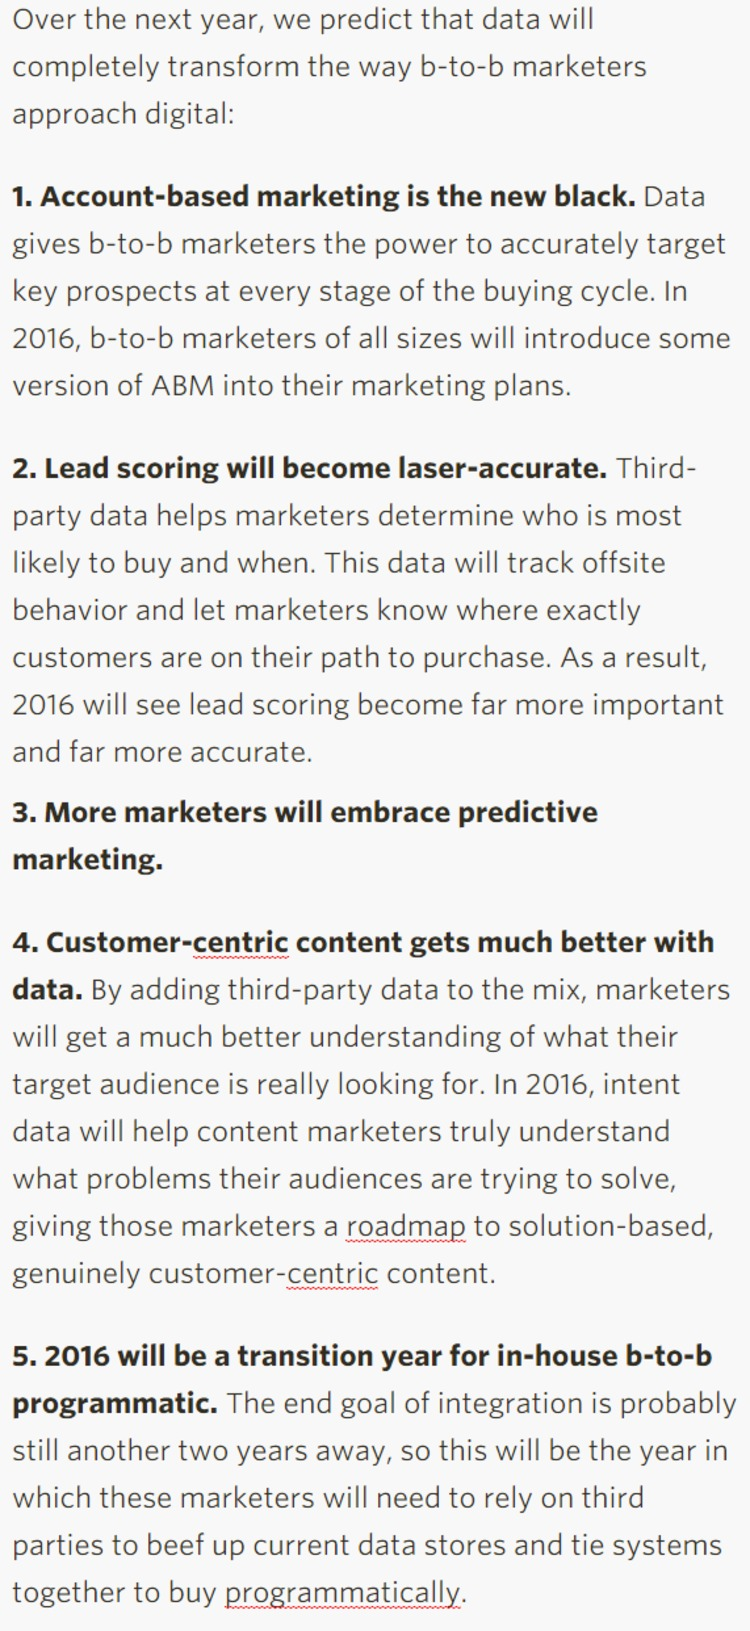 How Data Will Transform B-to-B Marketing in 2016 - Ad Age | The Marketing Technology Alert | Scoop.it